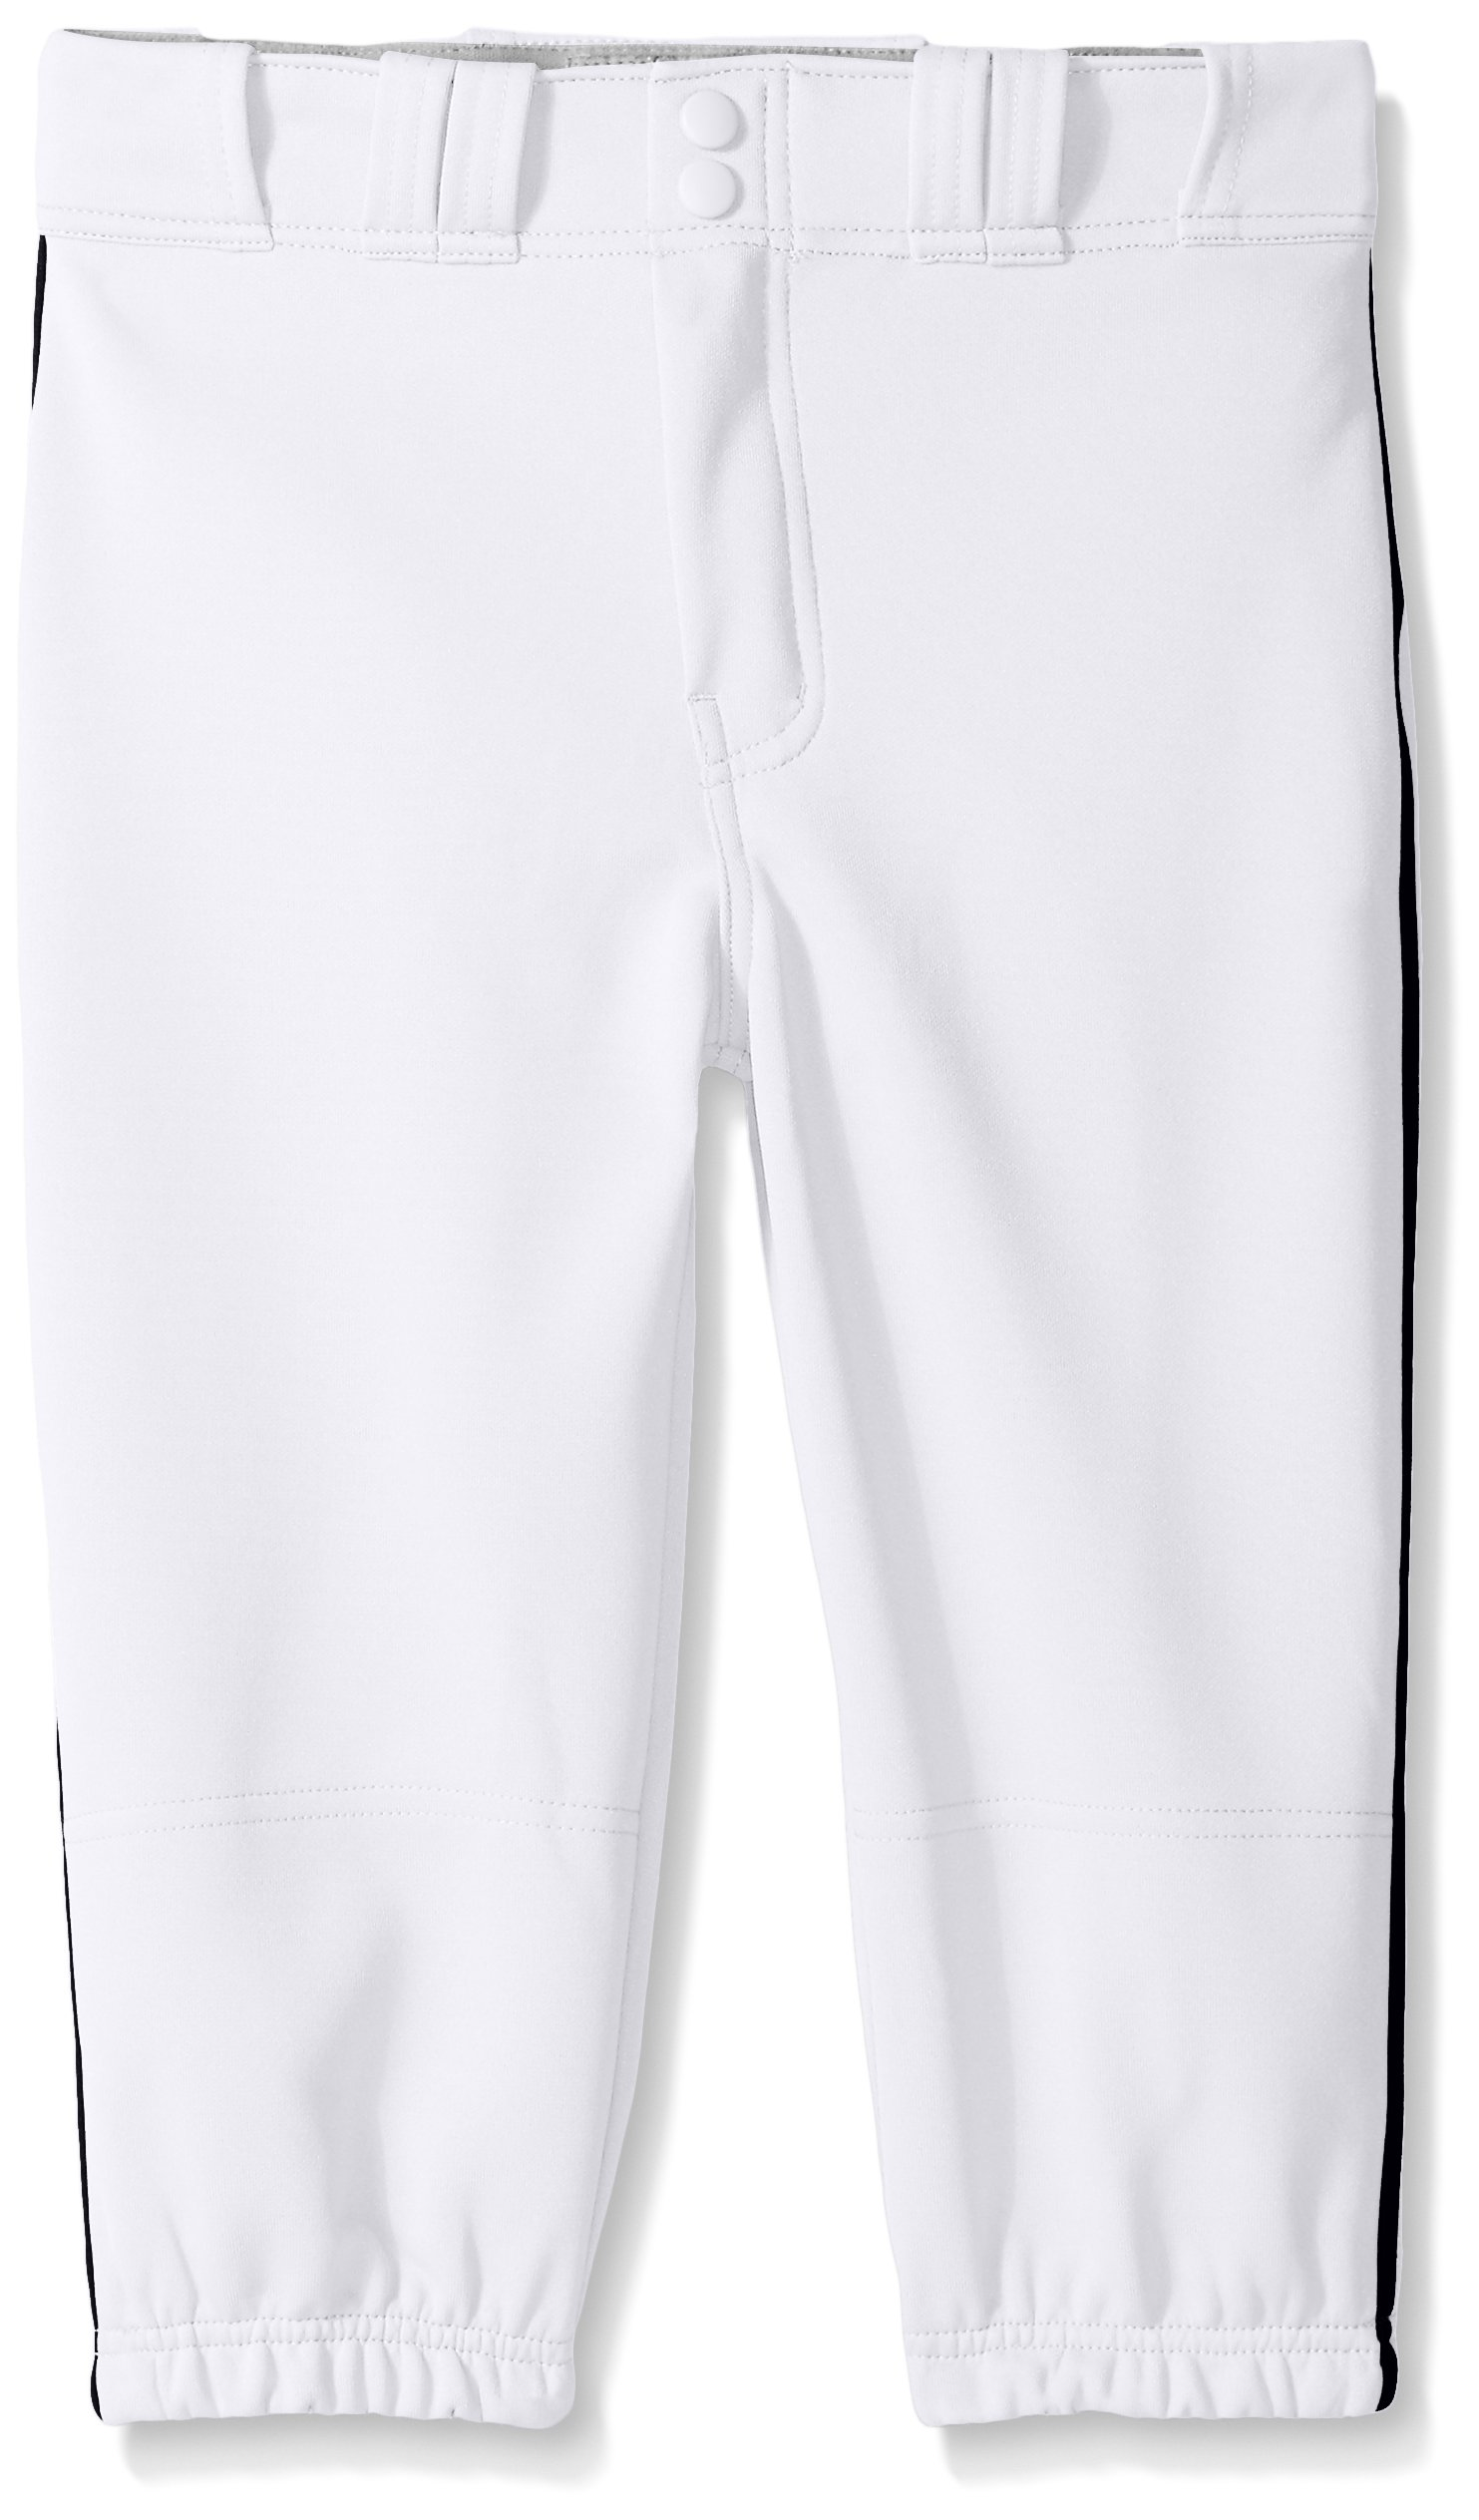 Easton Boys PRO Plus Piped Knicker, White/Black, Youth Small(YS) by Easton